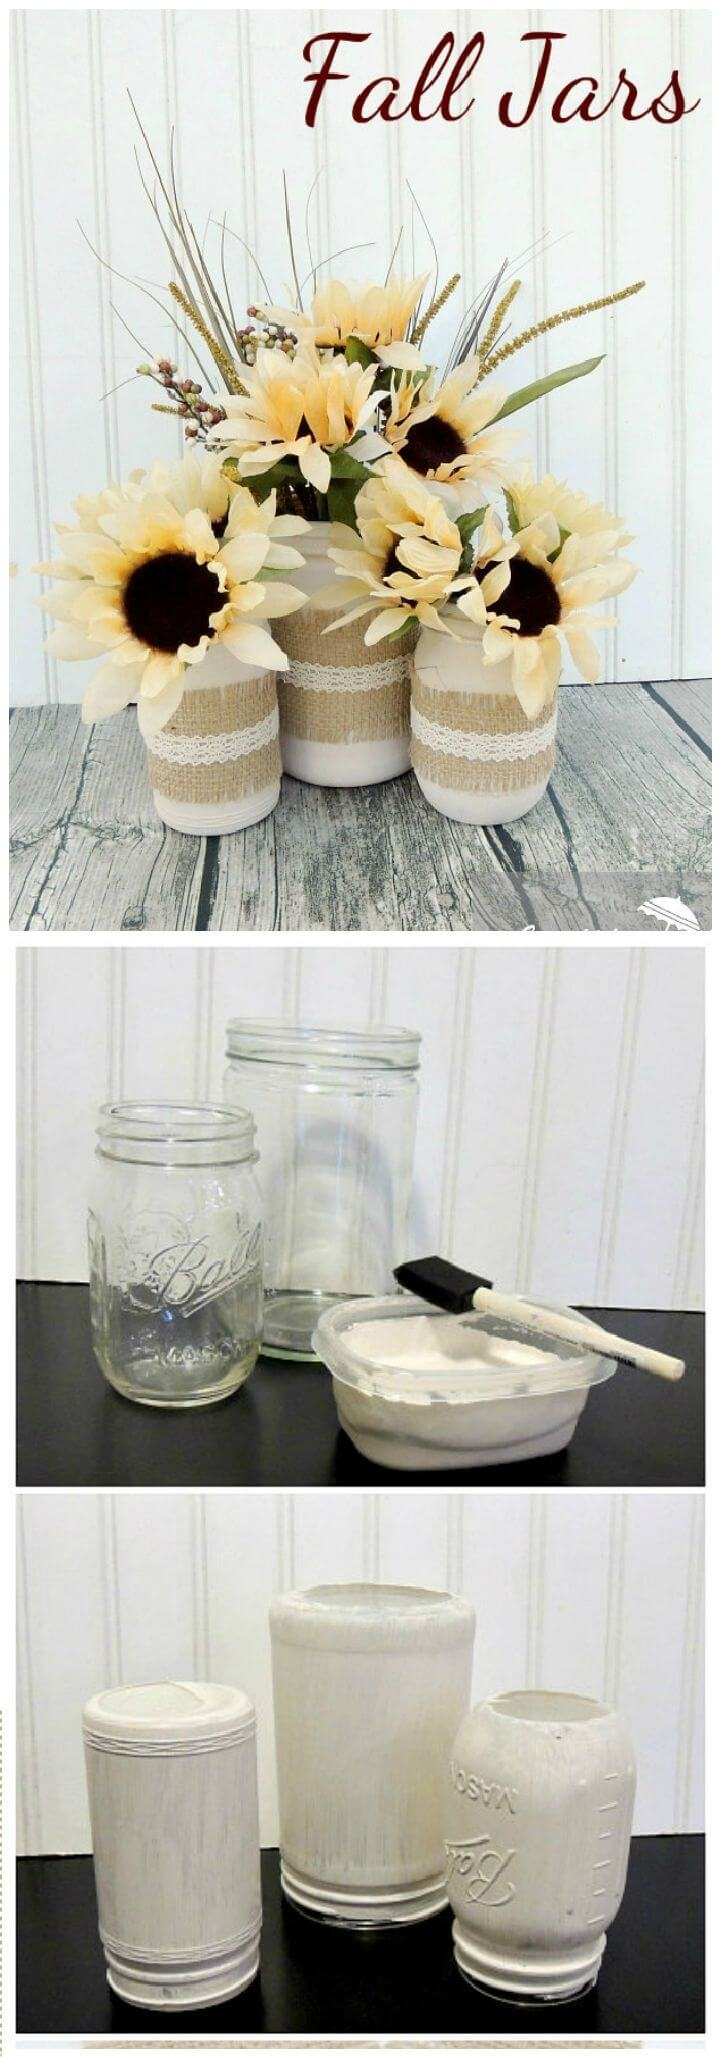 Painted White Mason Jars with Burlap